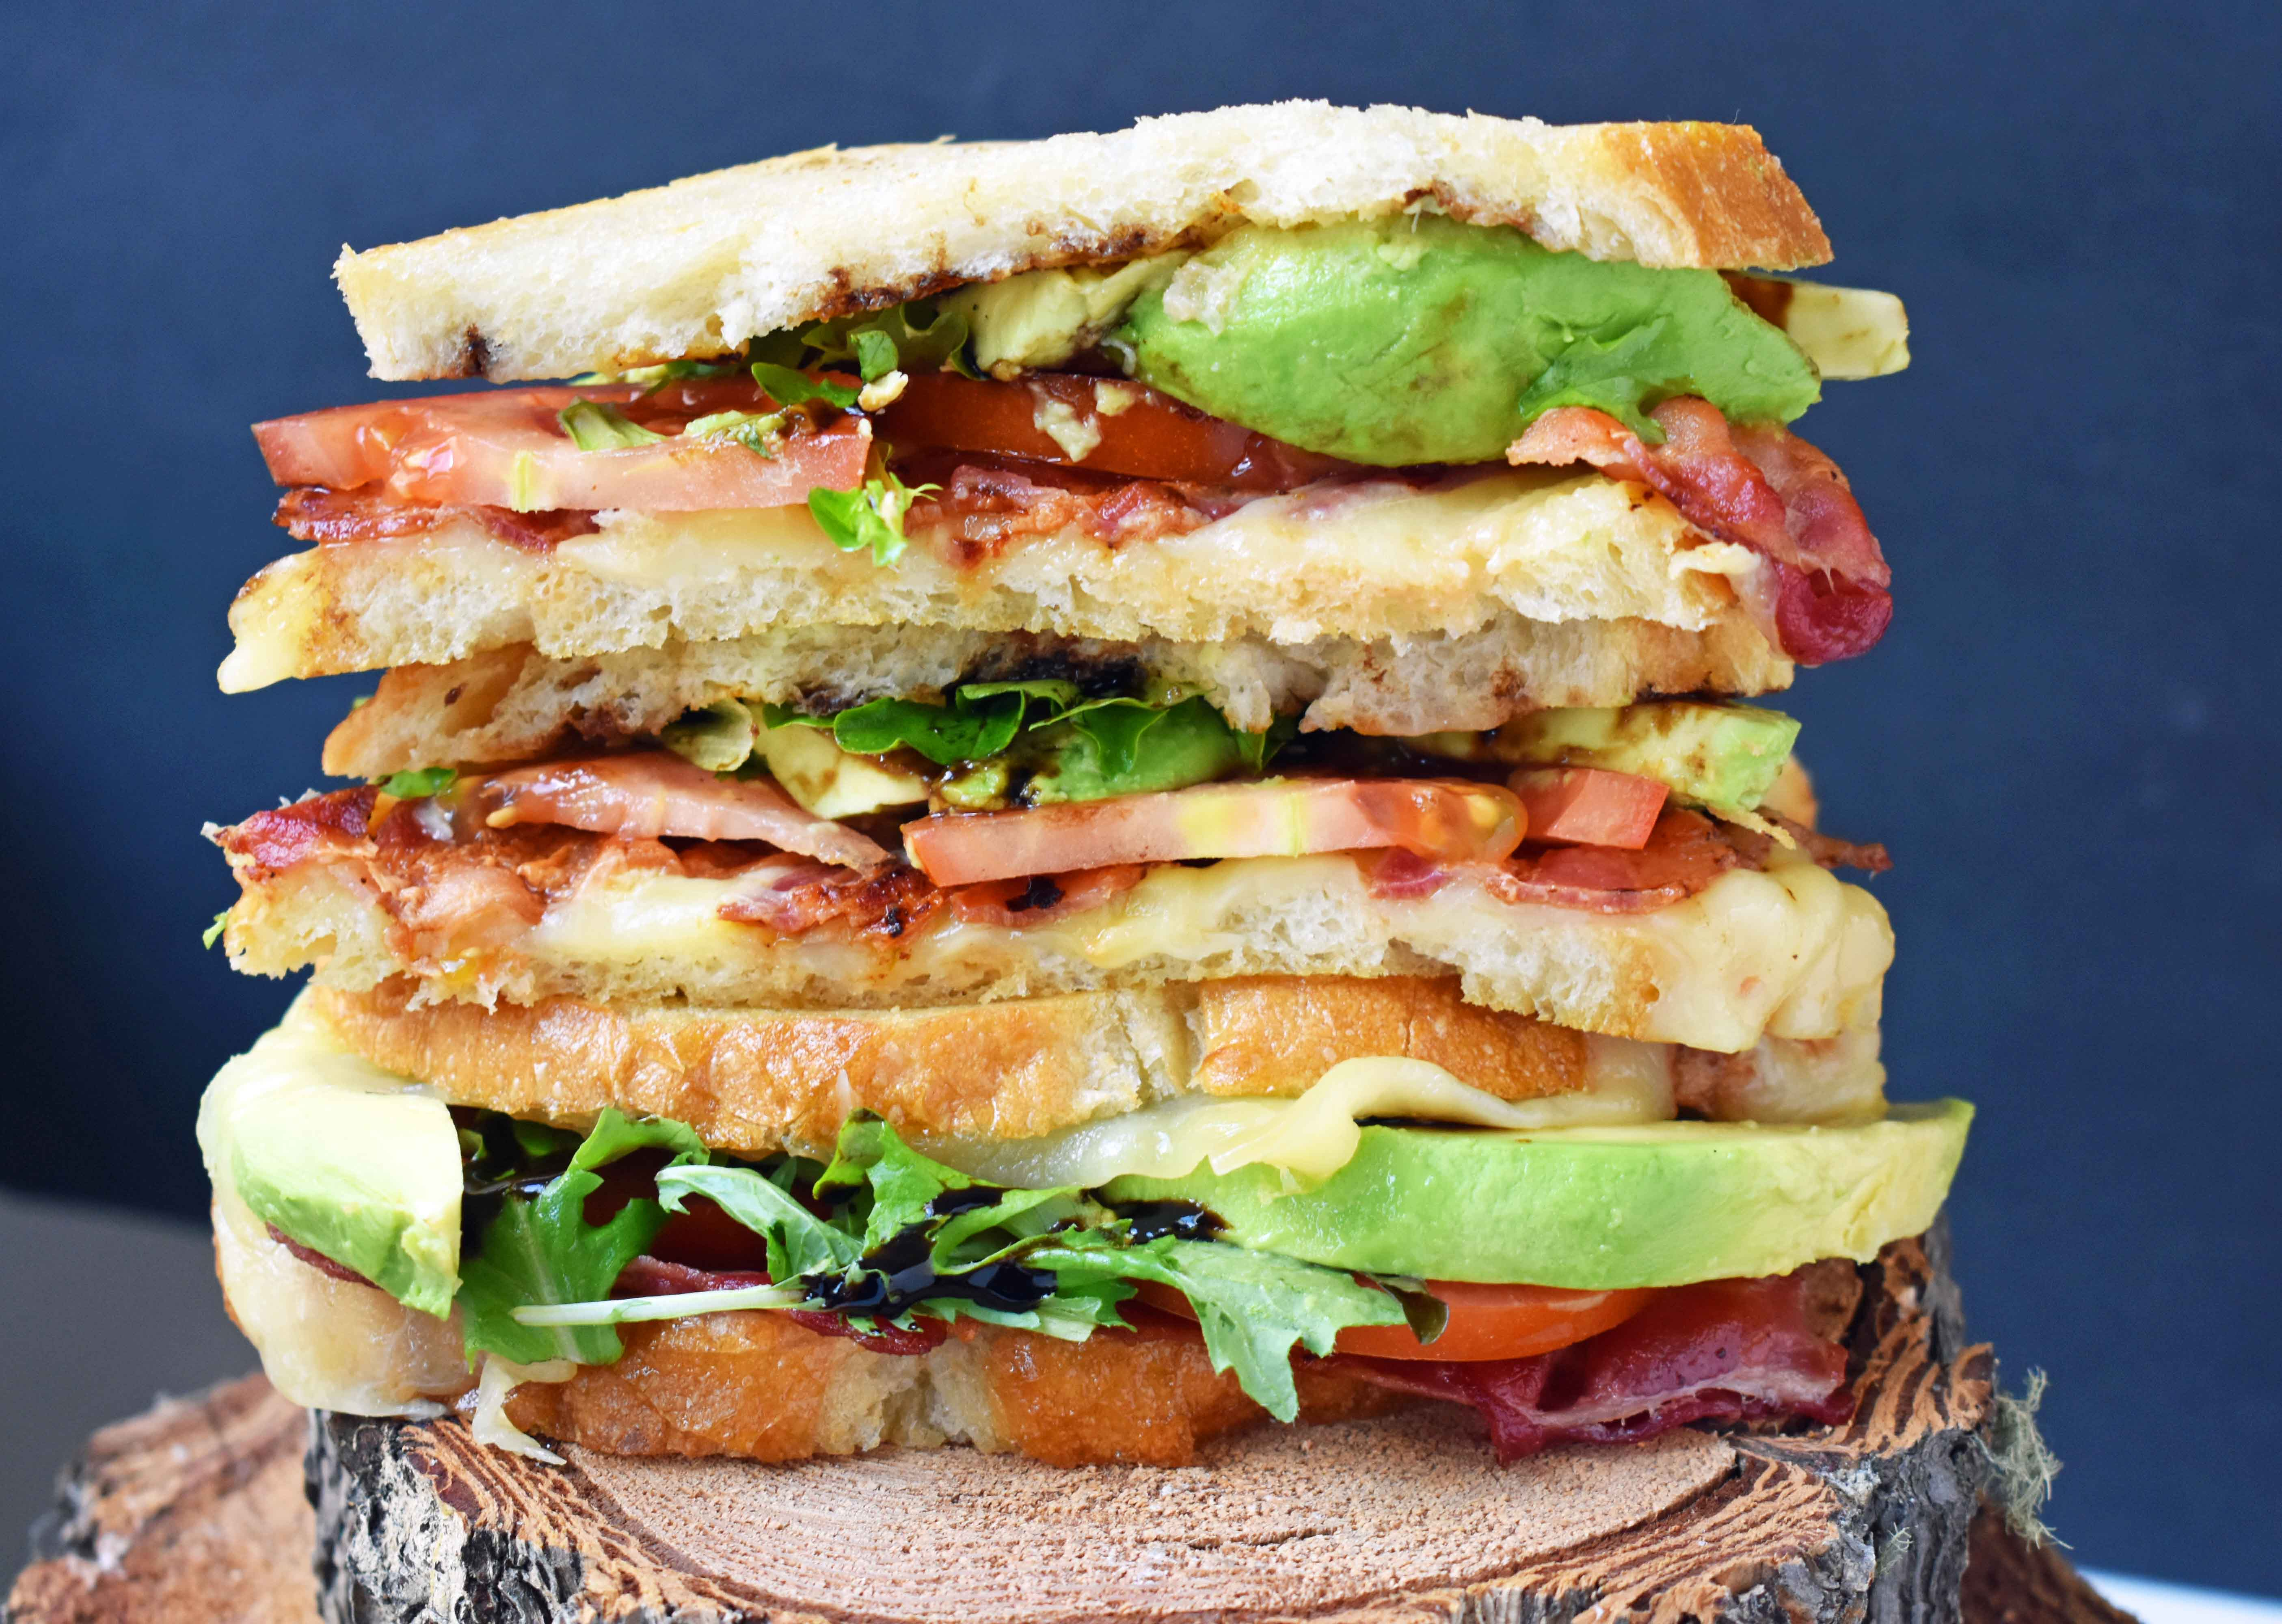 Grown Up Grilled Cheese Sandwich. Three different types of cheese - Swiss, White Sharp Cheddar, and Pepper Jack, crispy bacon, creamy avocado, thinly sliced tomatoes, spring mix, and drizzled with balsamic glaze. A grilled cheese sandwich full of flavor! www.modernhoney.com